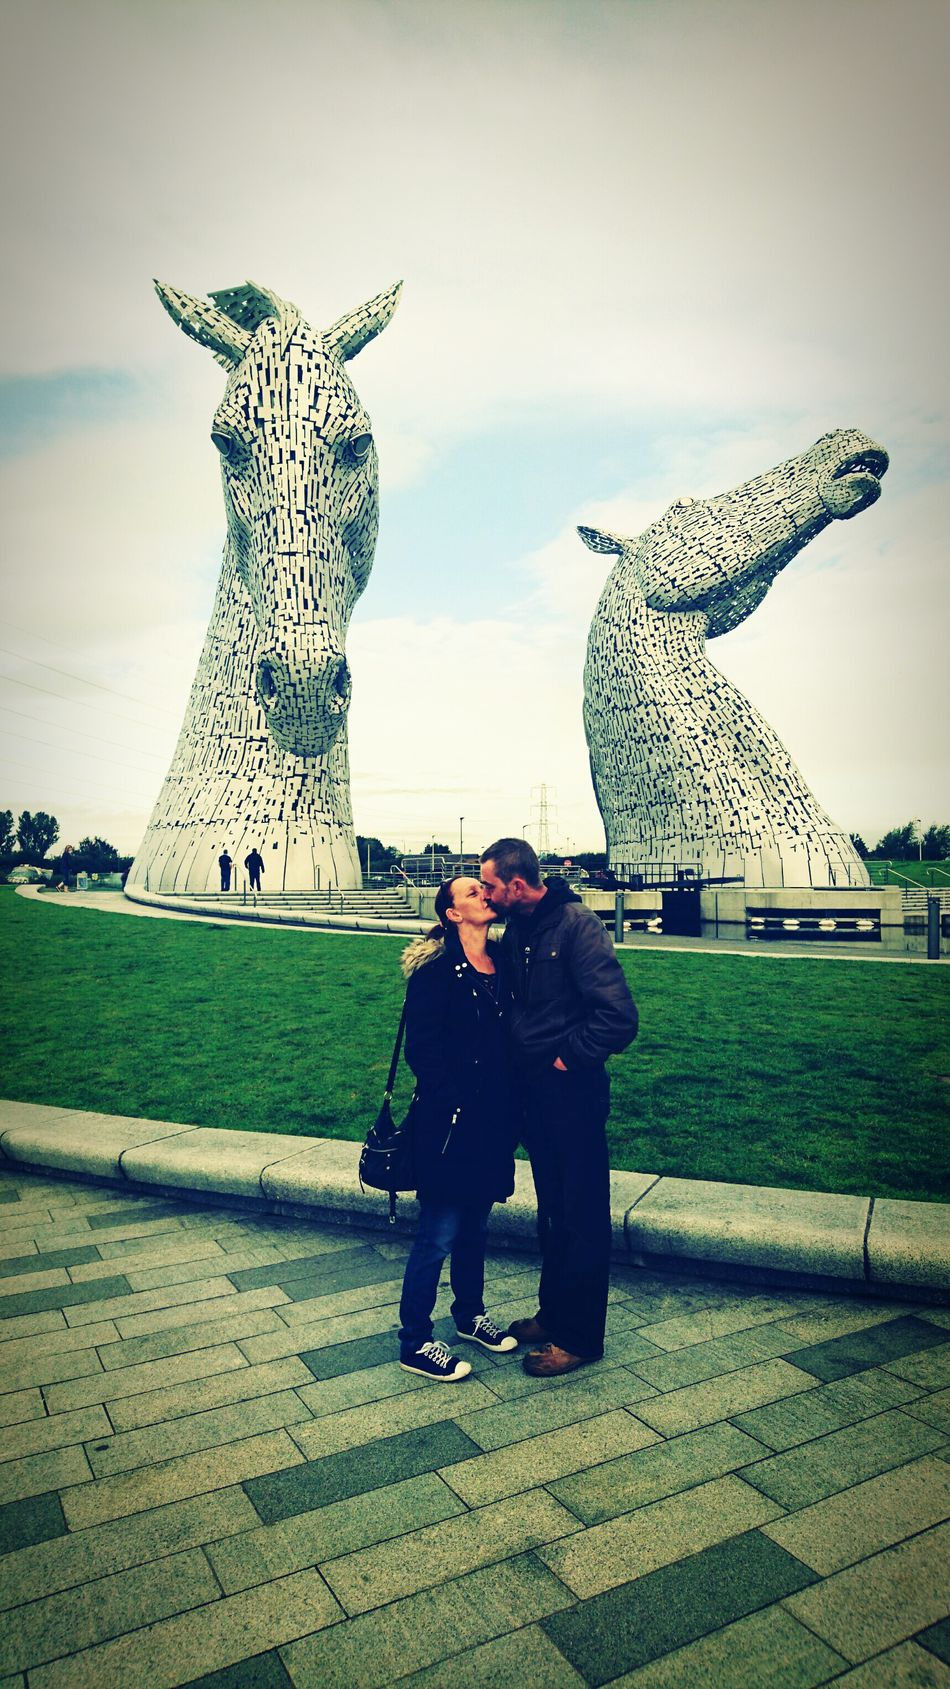 Making my parents let me take a cheesy picture. Romantic Love Kissing Couple EyeEm Best Edits Getting Inspired Taking Photos First Eyeem Photo Popular Photos EyeEm Best Shots Kelpies  Architectural Feature Falkirk Kelpies Of Falkirk Scotland